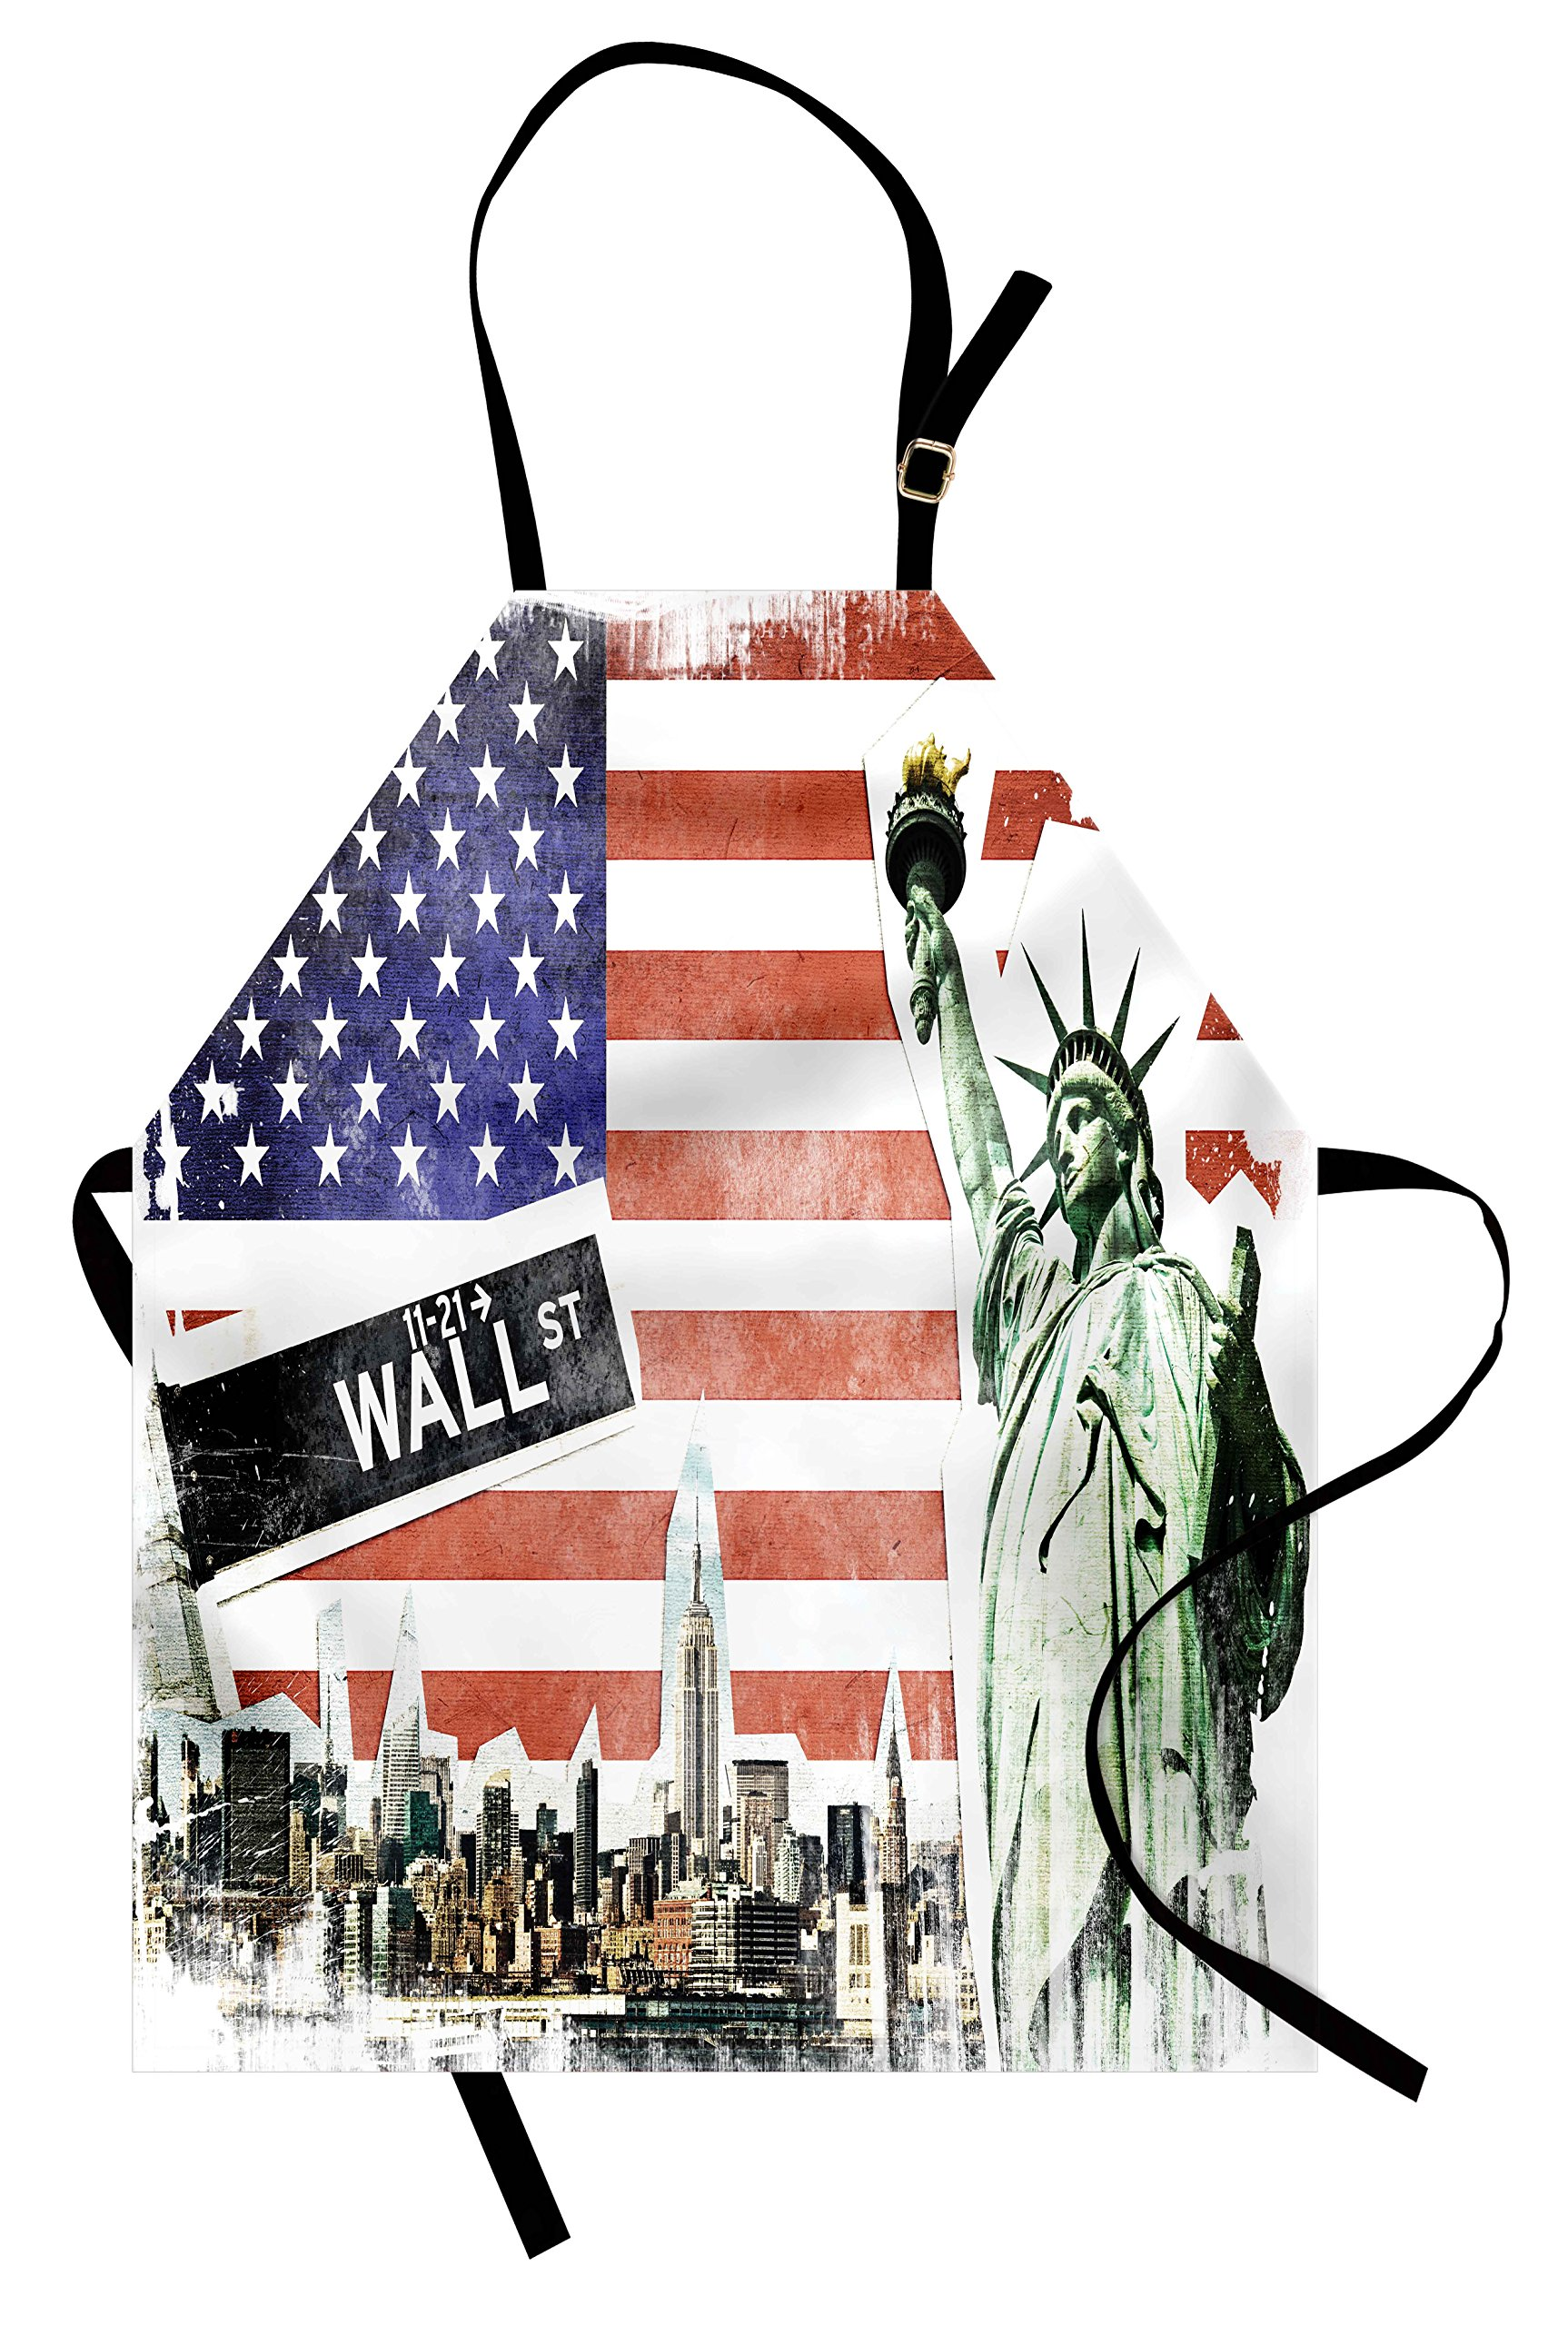 Ambesonne American Flag Apron, NYC Collage with Famous Monuments Wall Street and Manhattan Urban Display, Unisex Kitchen Bib with Adjustable Neck for Cooking Gardening, Adult Size, Blue Red by Ambesonne